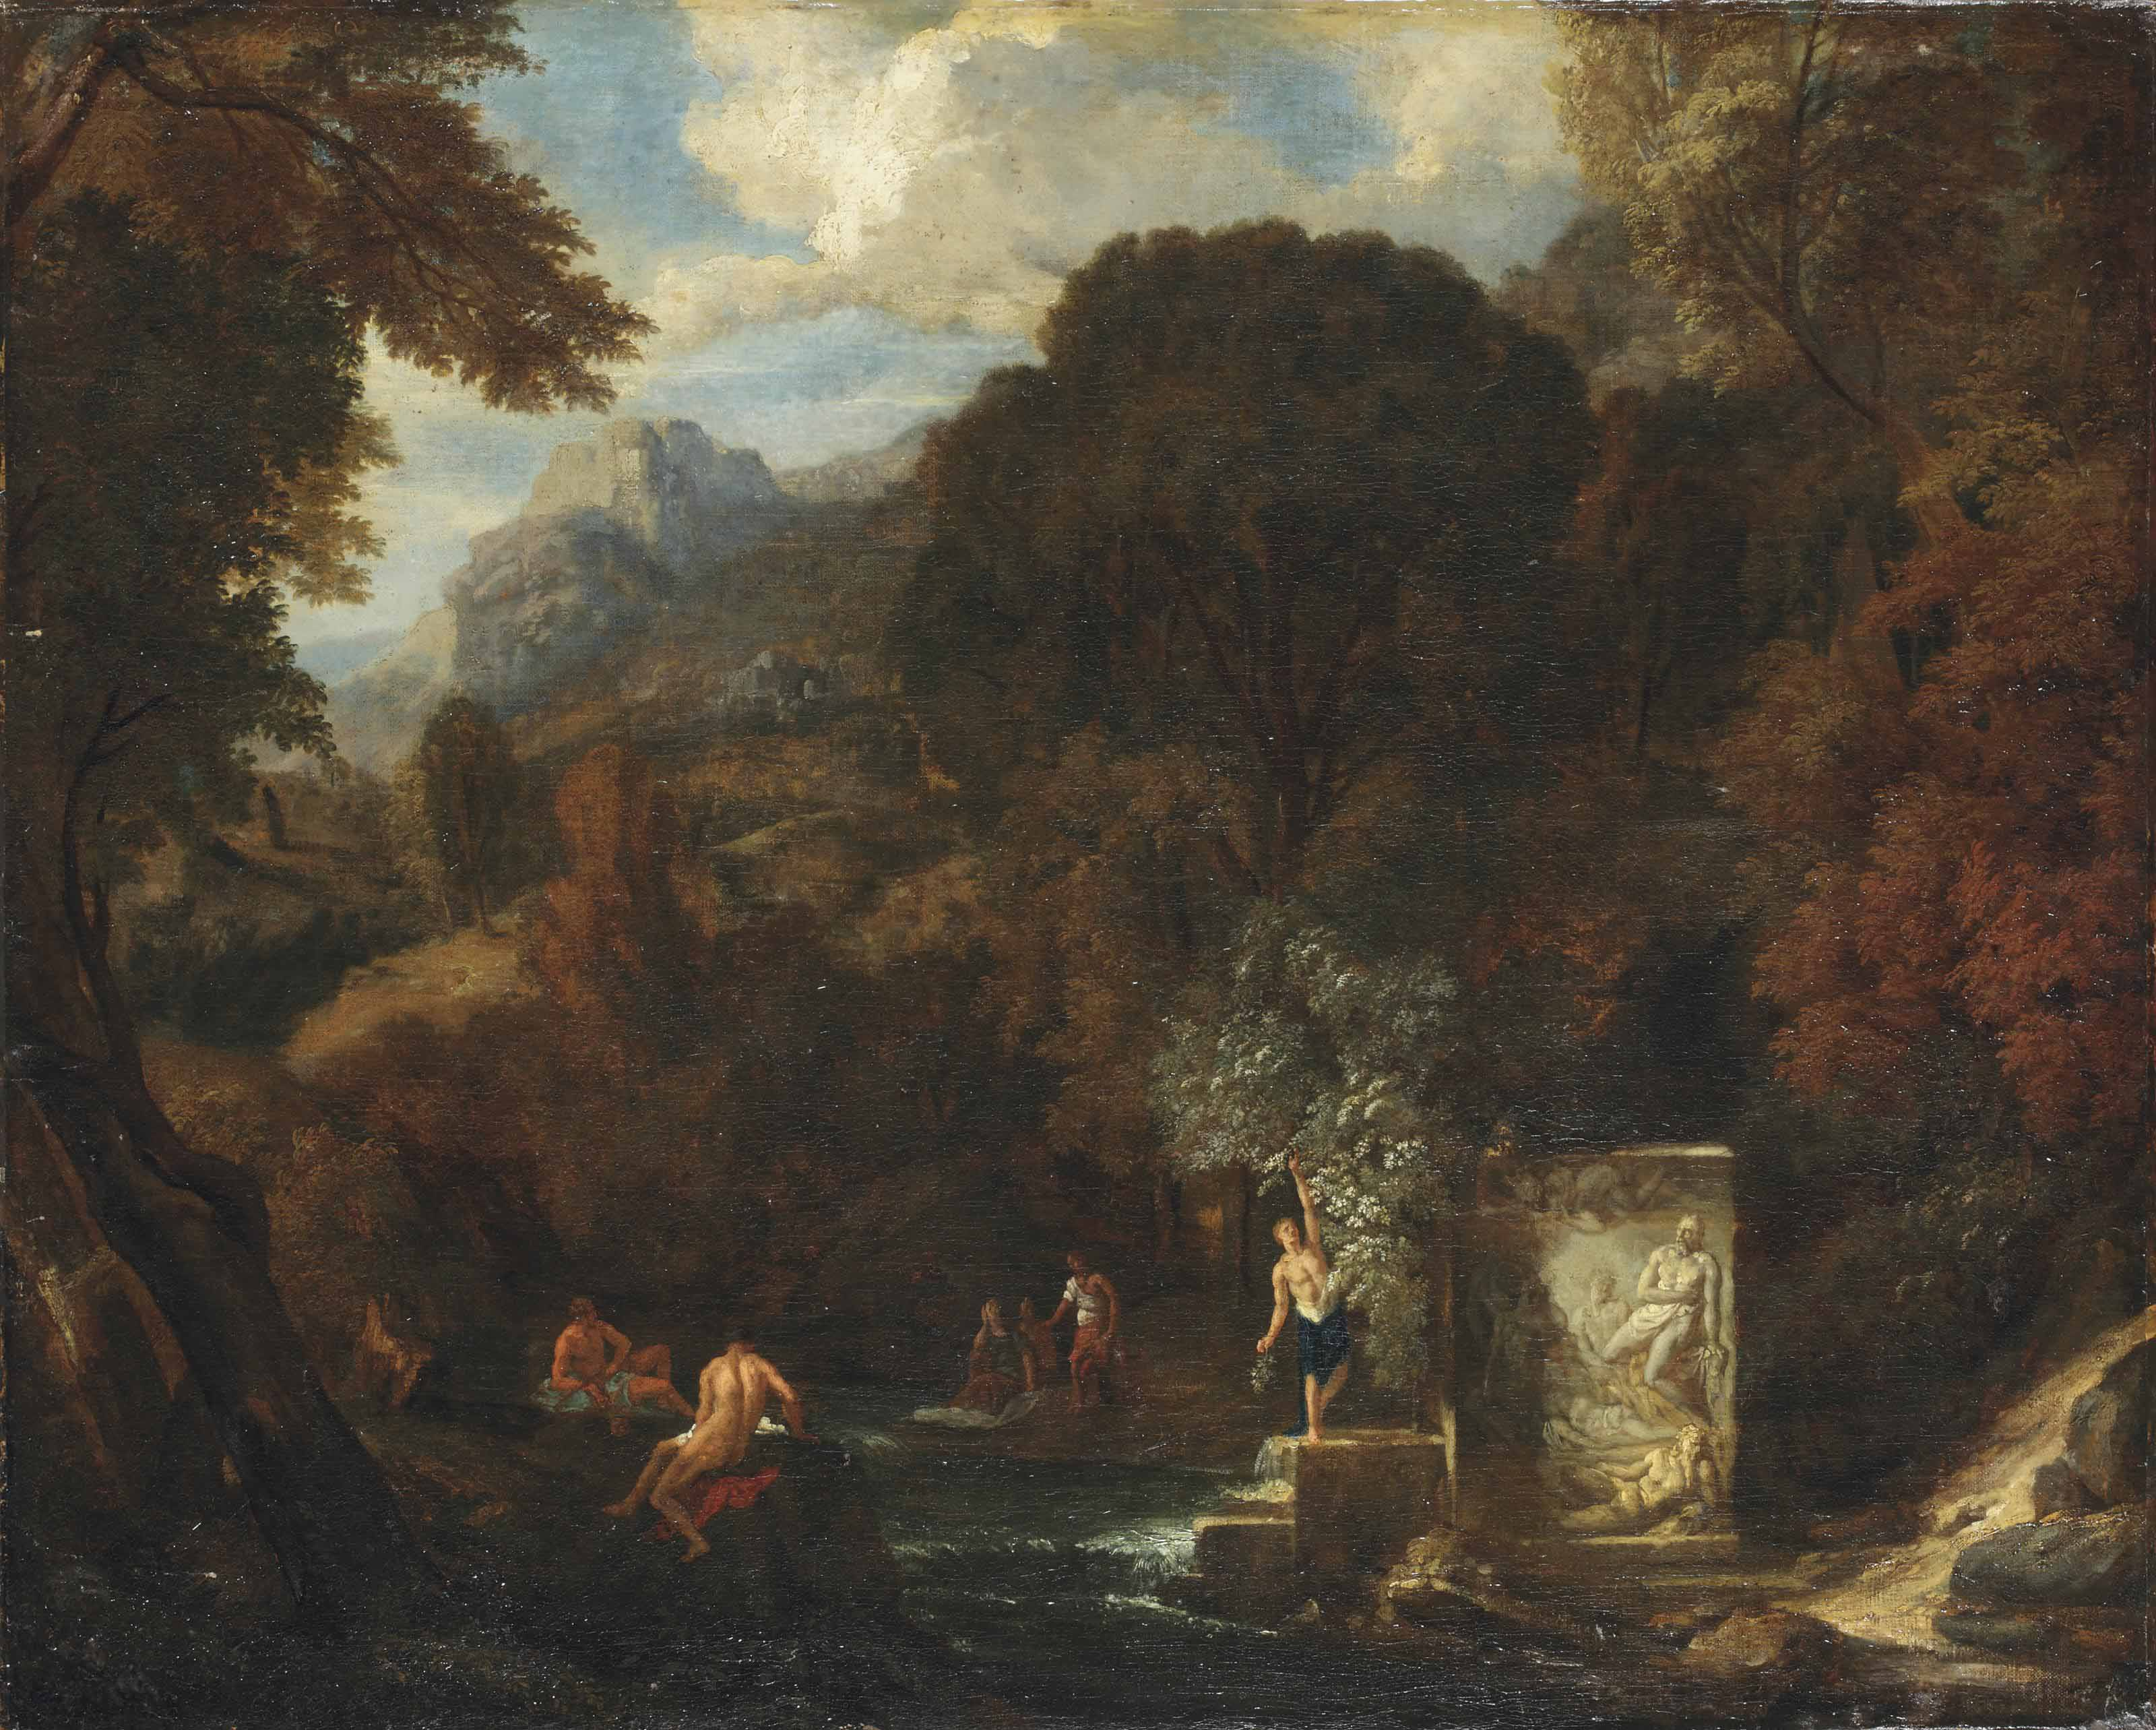 An idyllic mountainous landscape with figures by a stream